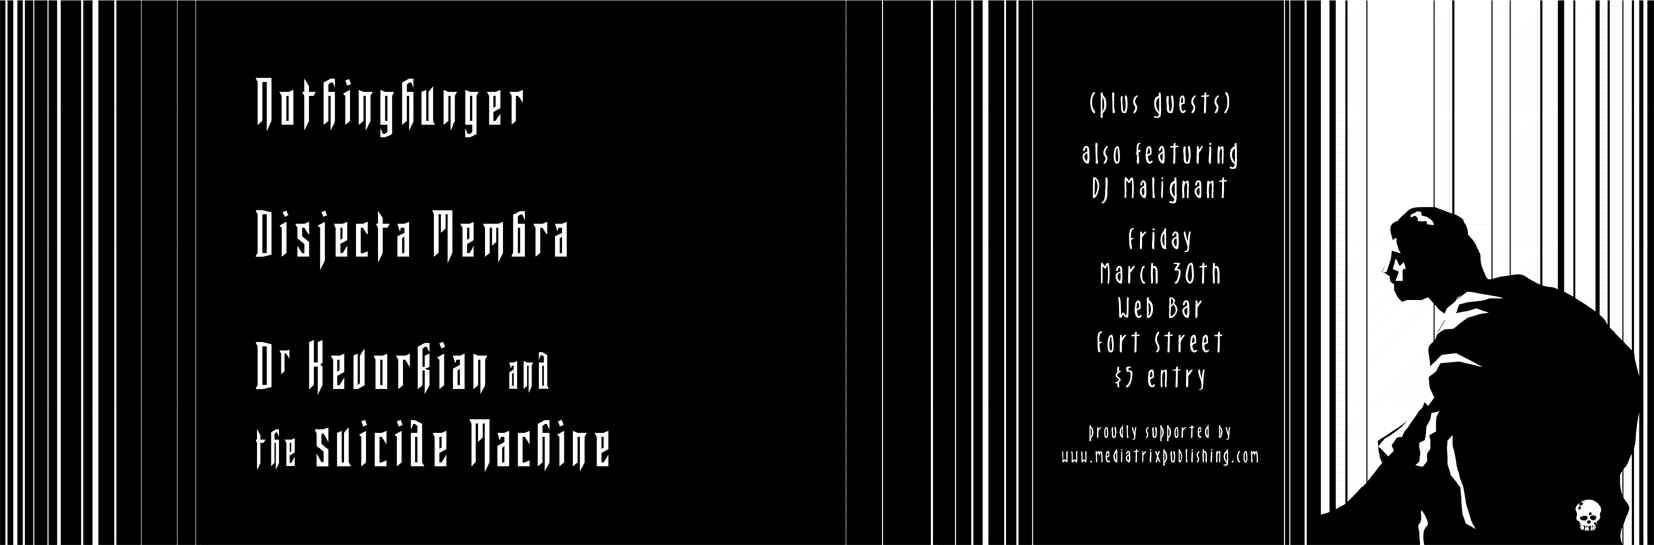 The first show Russell Dench and Lou Juventin played as members of Disjecta Membra, alongside  Jordan Reyne  (Dr Kevorkian and the Suicide Machine) and  Nothinghunger  at Web Bar, Auckland, 30 March 2001. Flyer by Mary MacGregor-Reid.